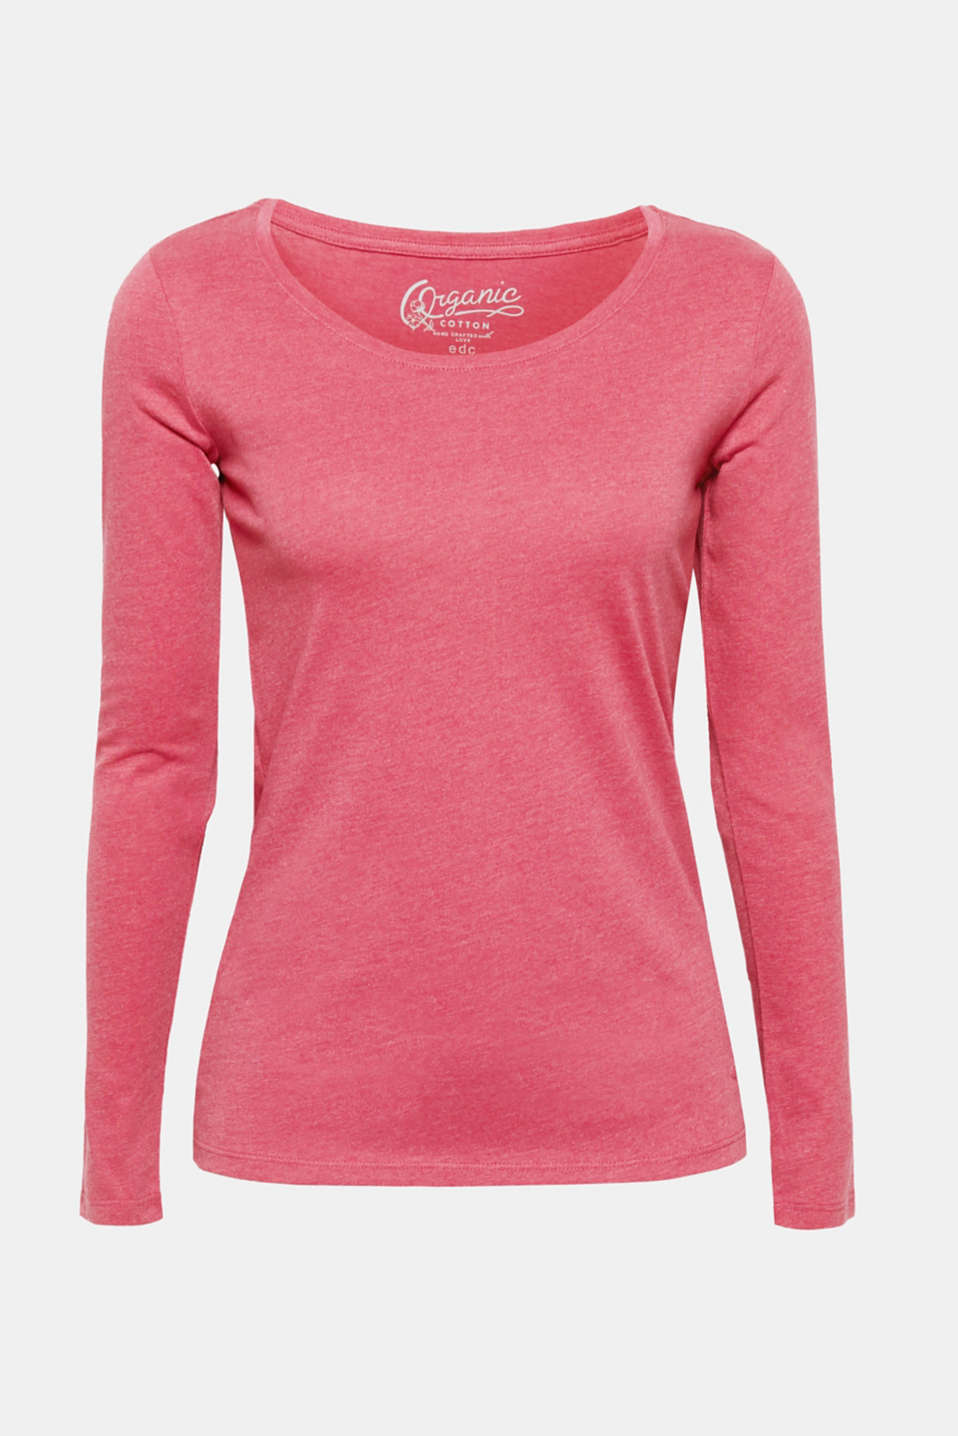 This long sleeve top with environmentally friendly, high-quality organic cotton and a large, feminine neckline is the perfect essential for your look!